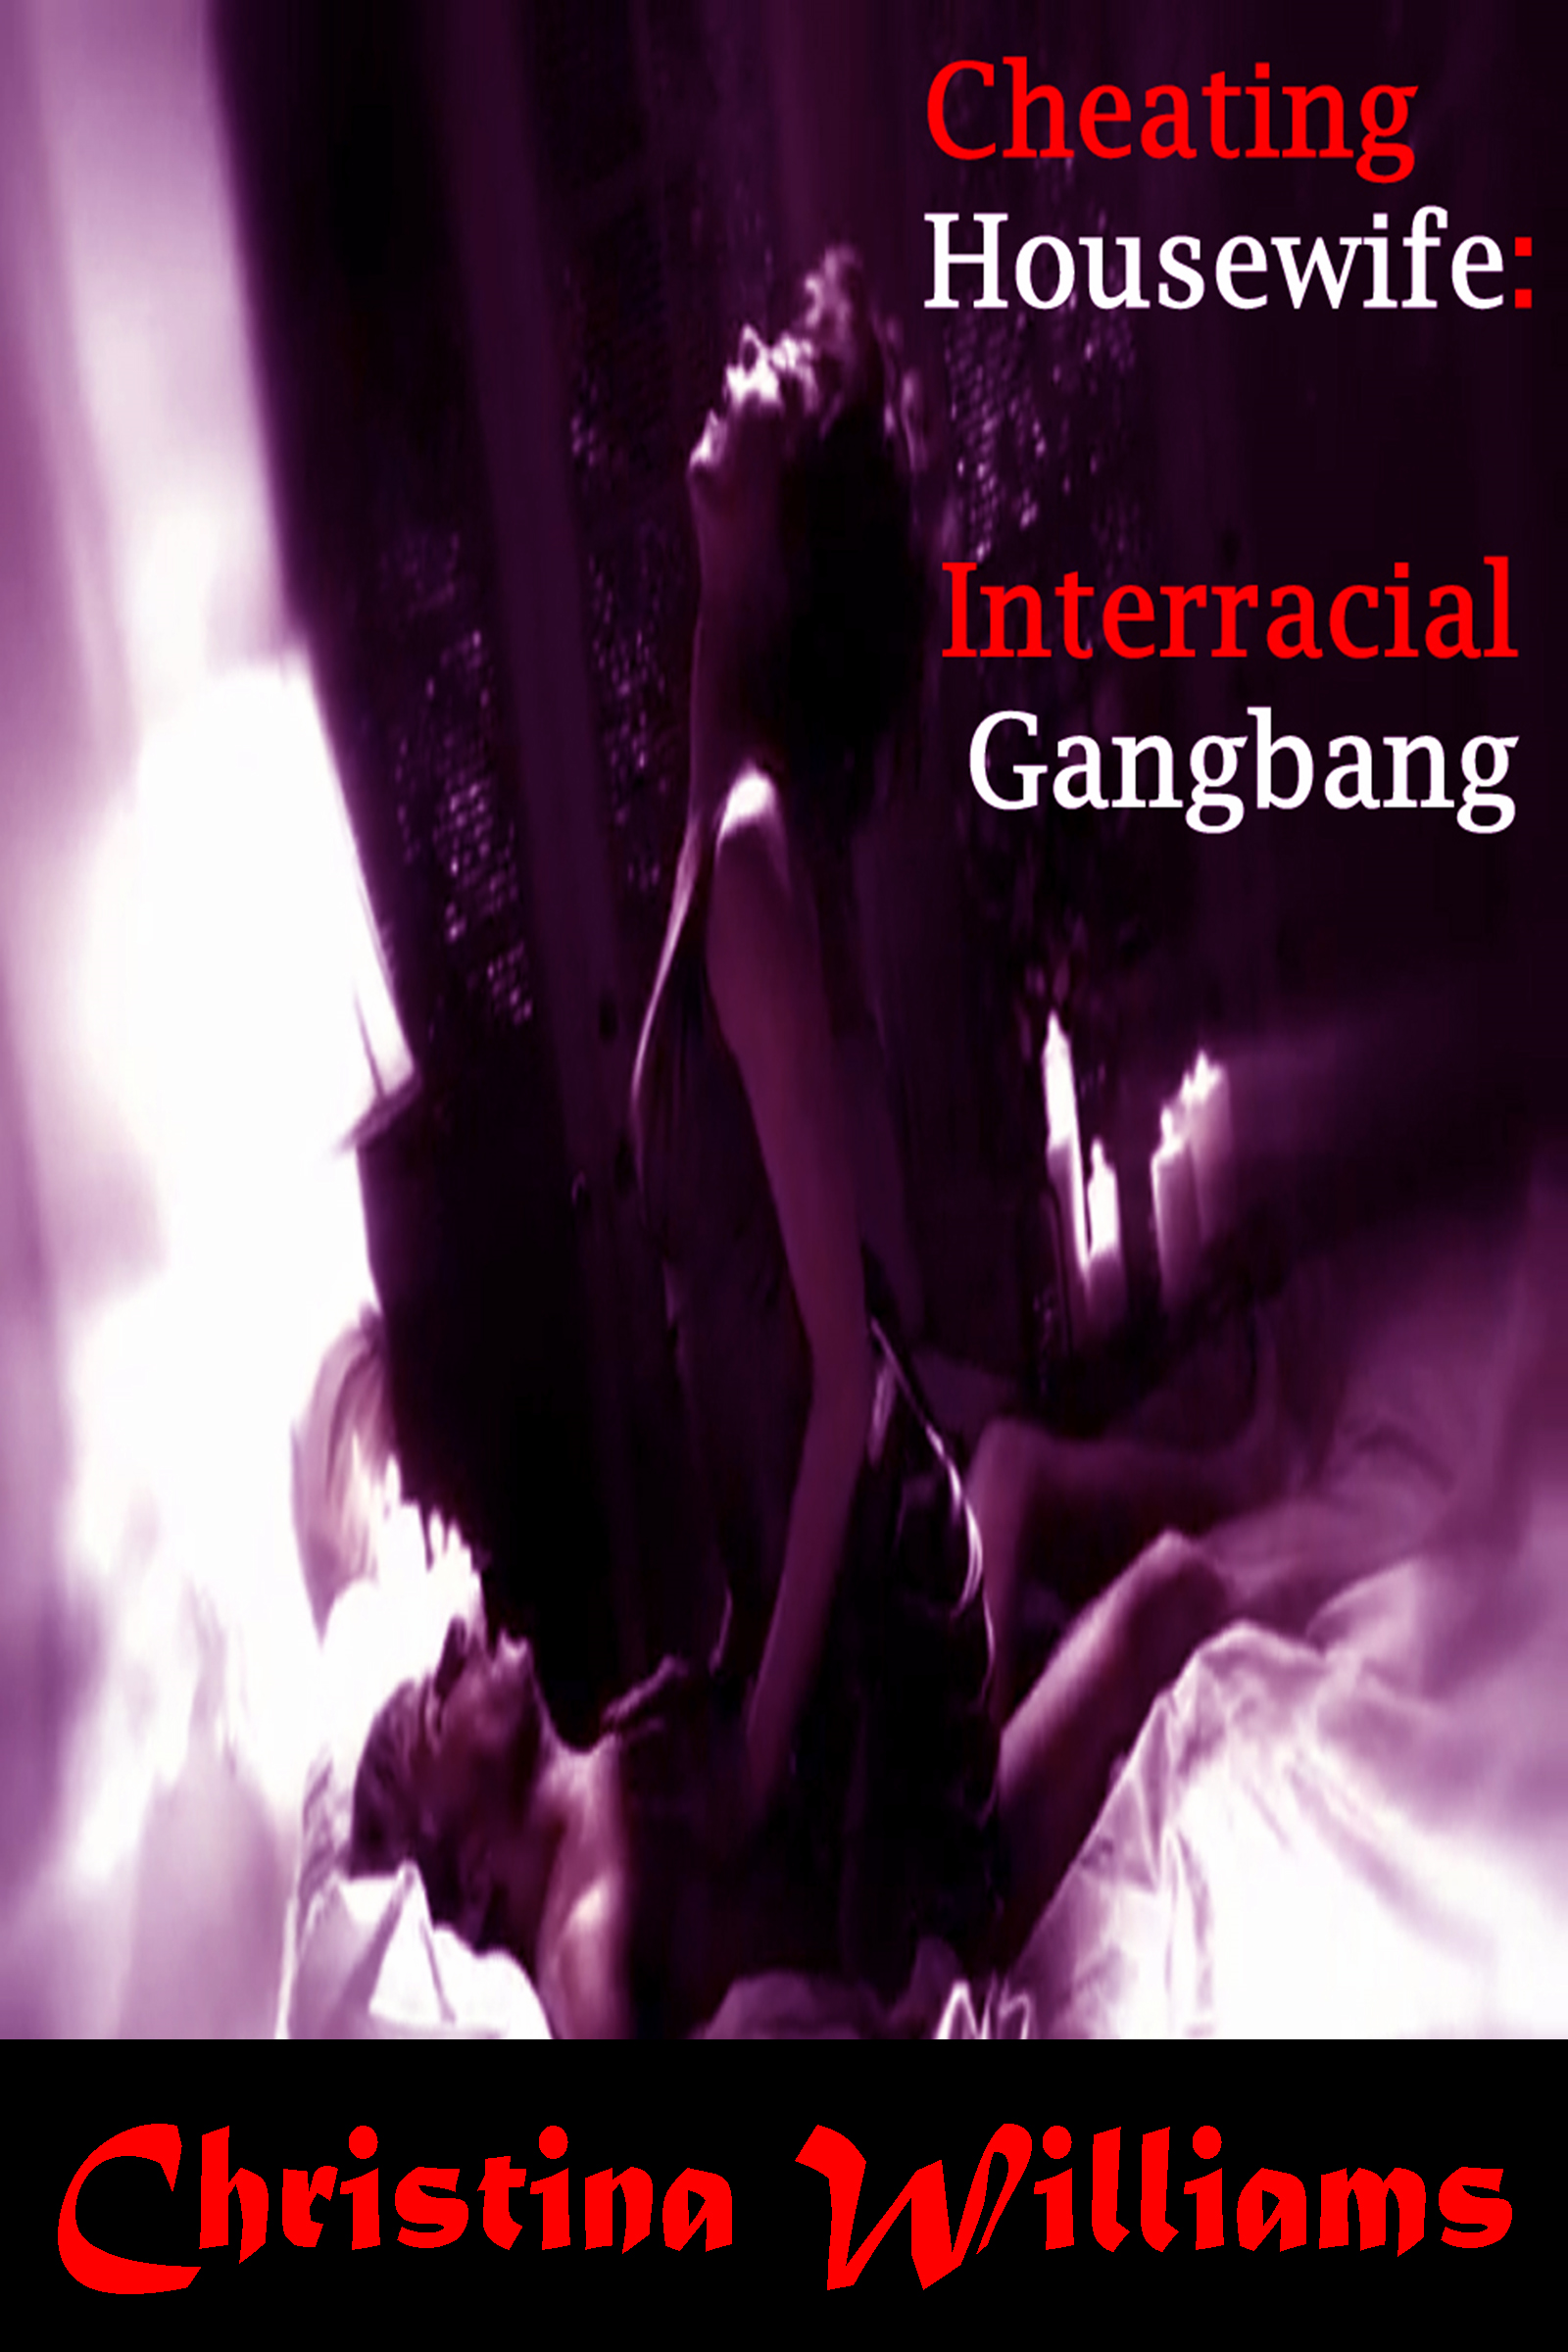 Cheating Housewife: Interracial Gangbang